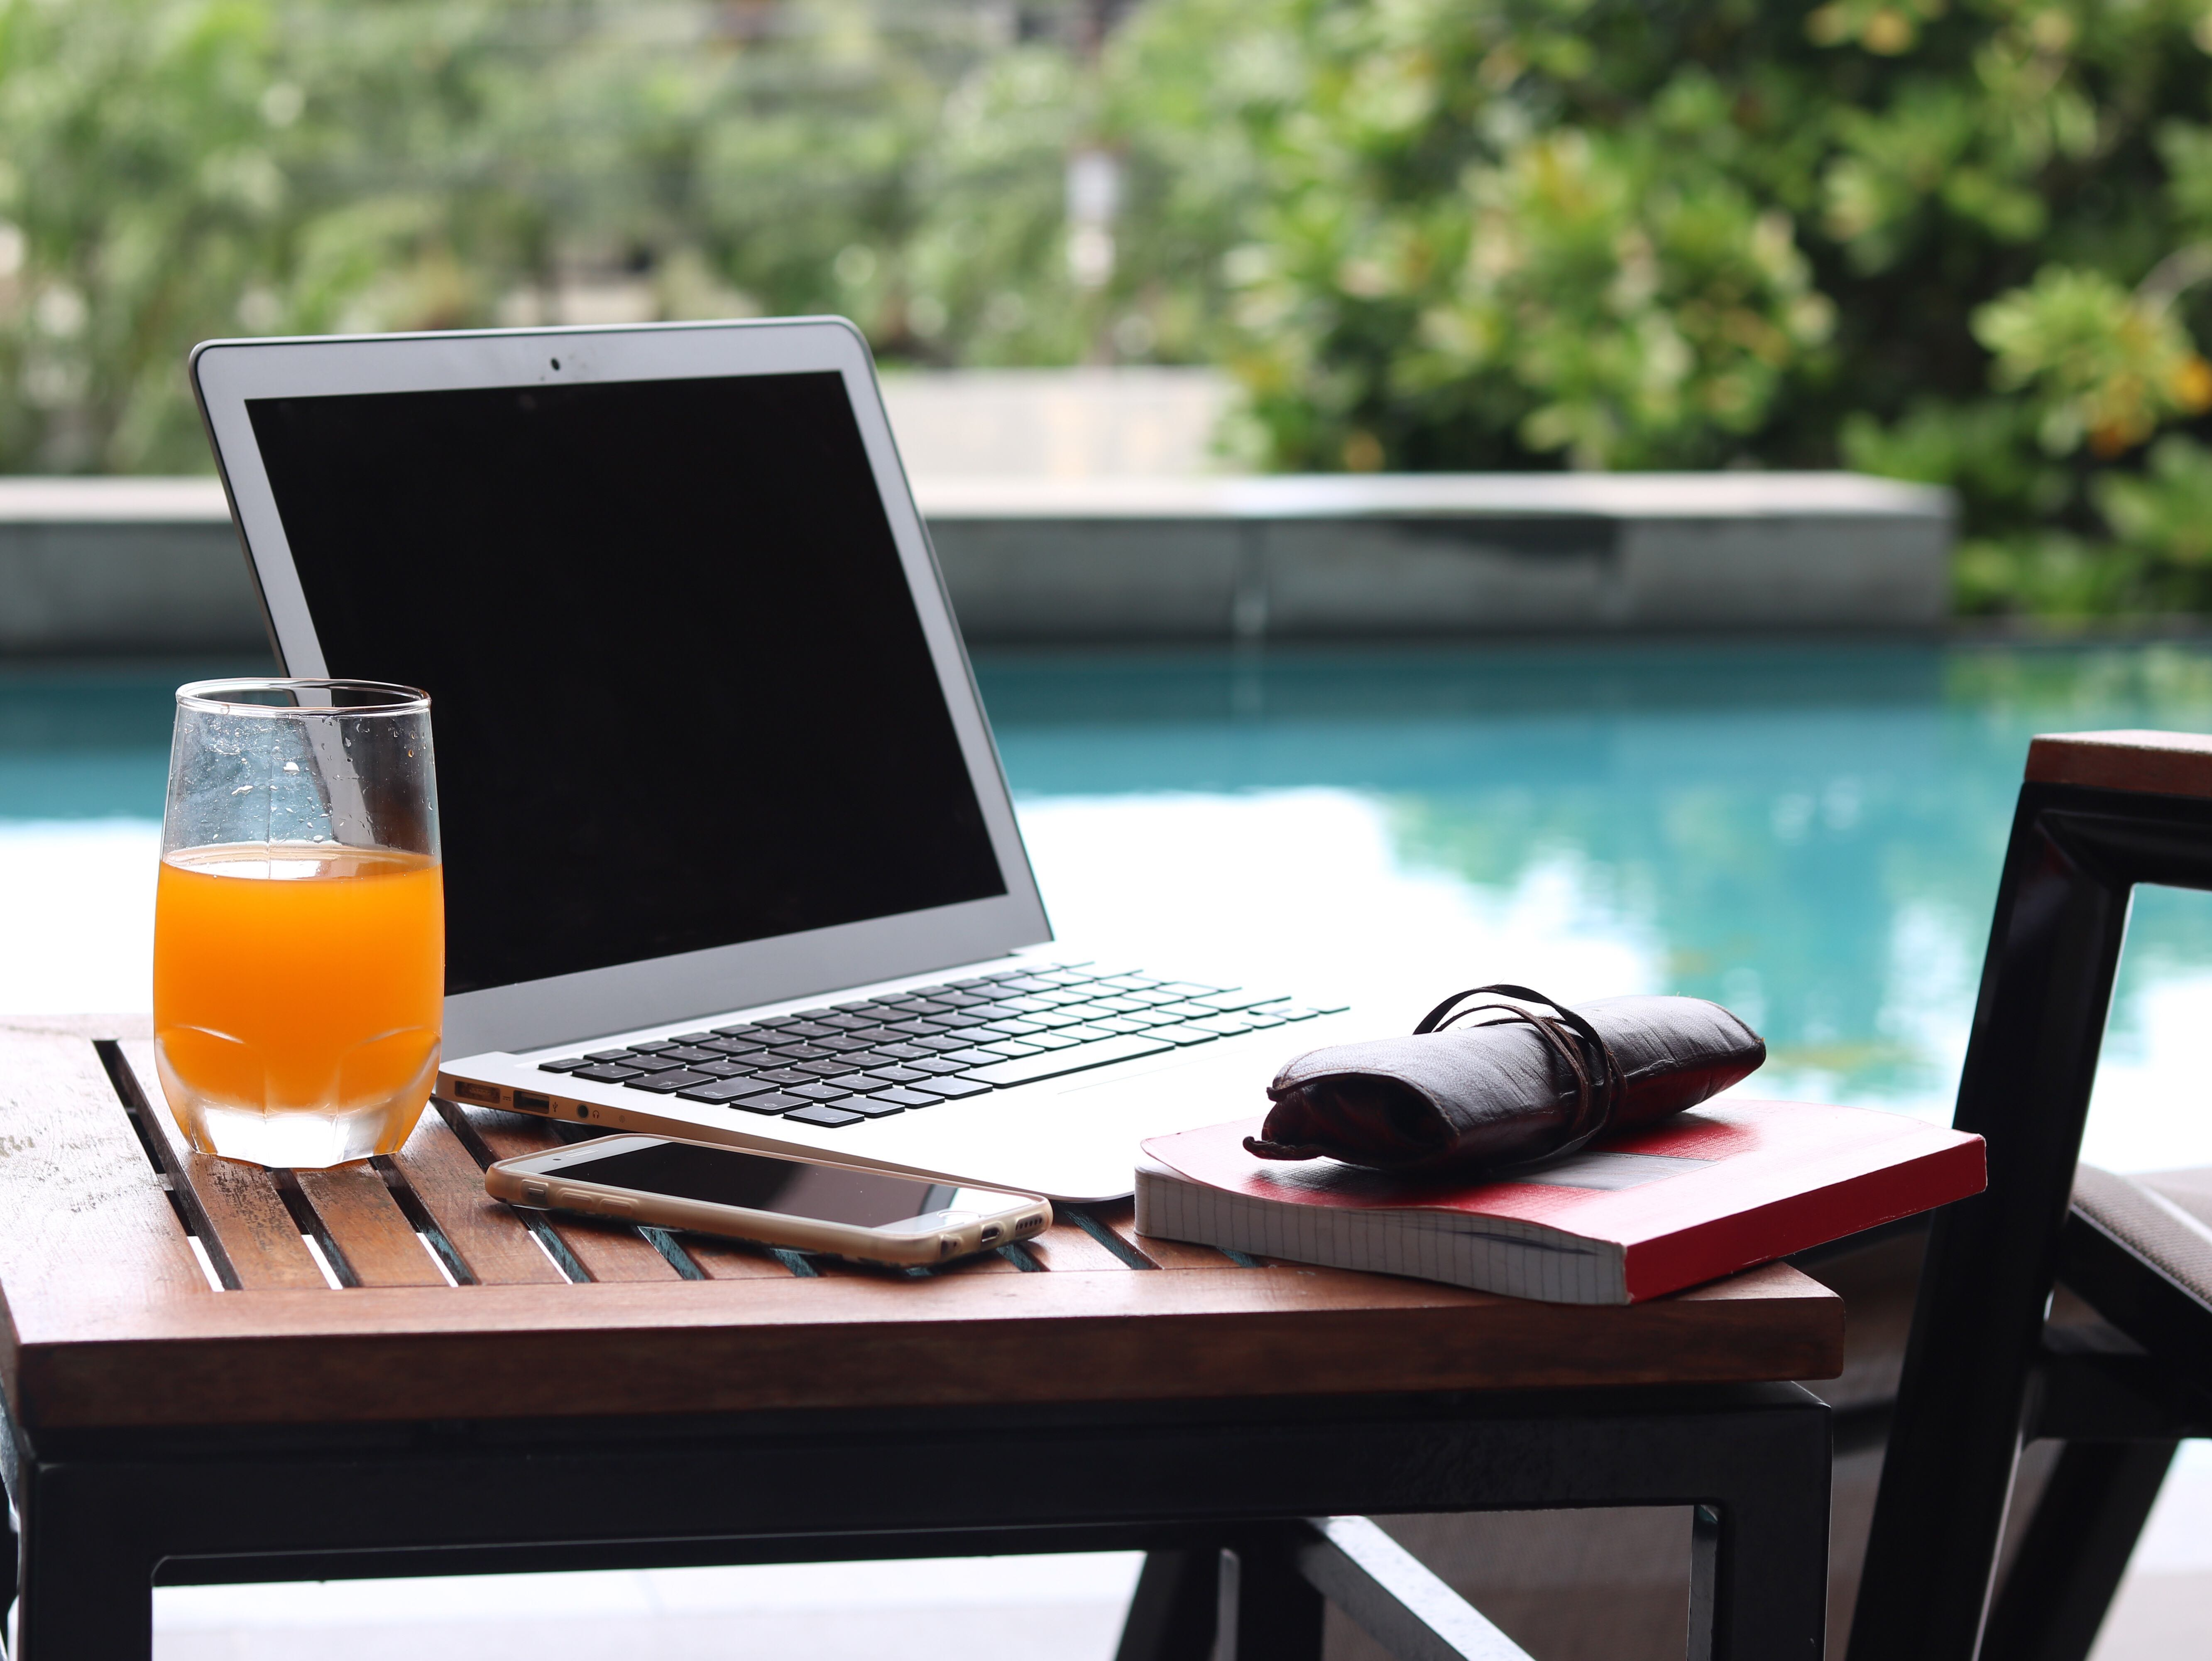 Work from anywhere aegon life insurance futurevolve